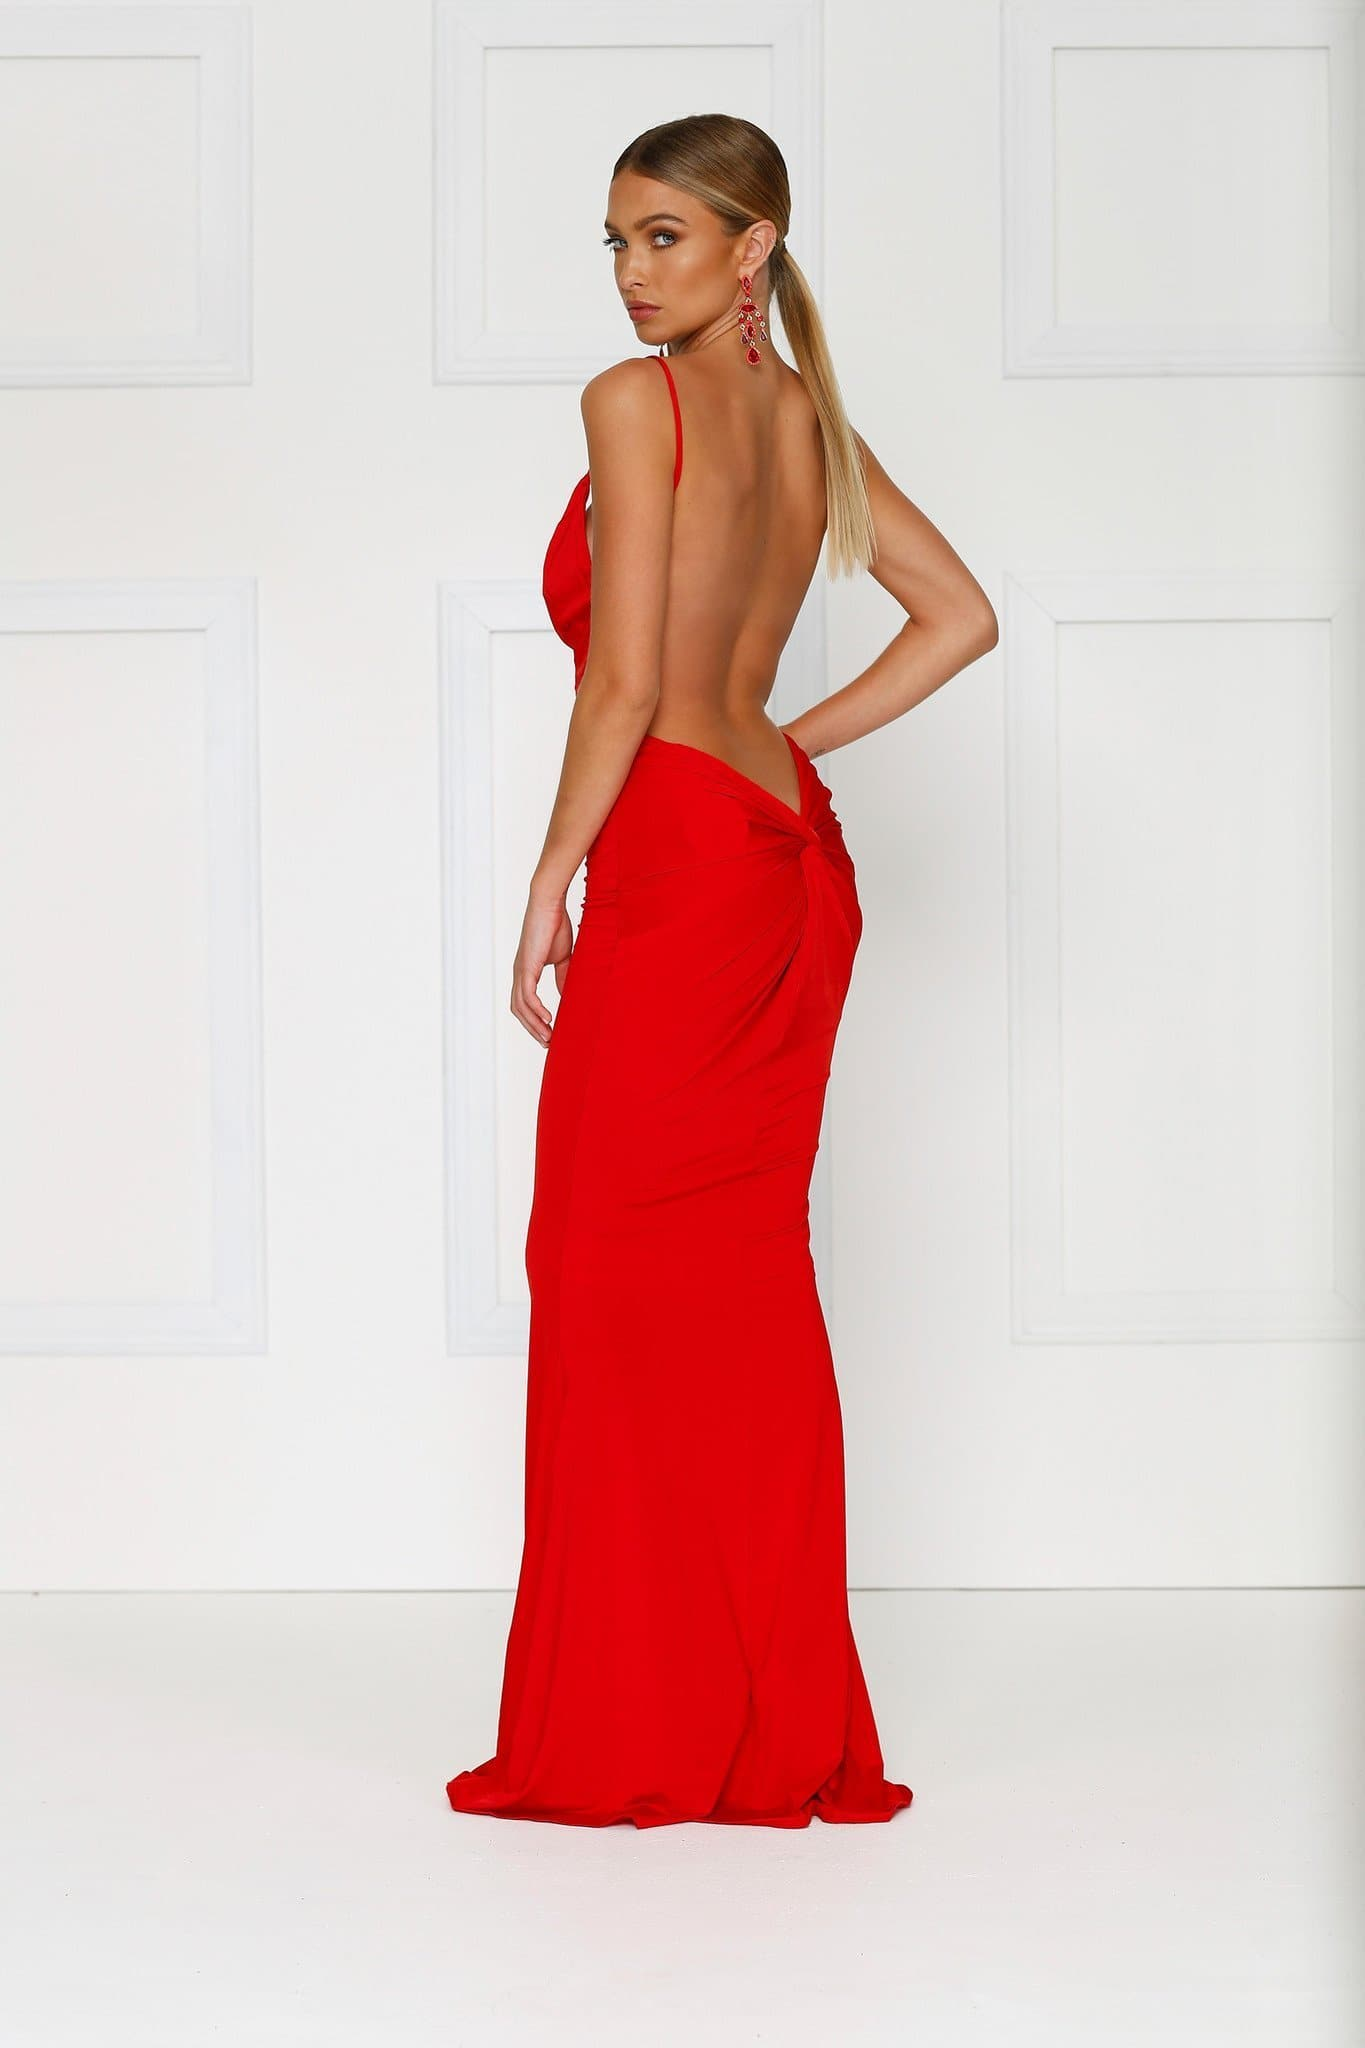 Penelope - Bright Red Jersey Gown with Low Back & Plunge Neckline